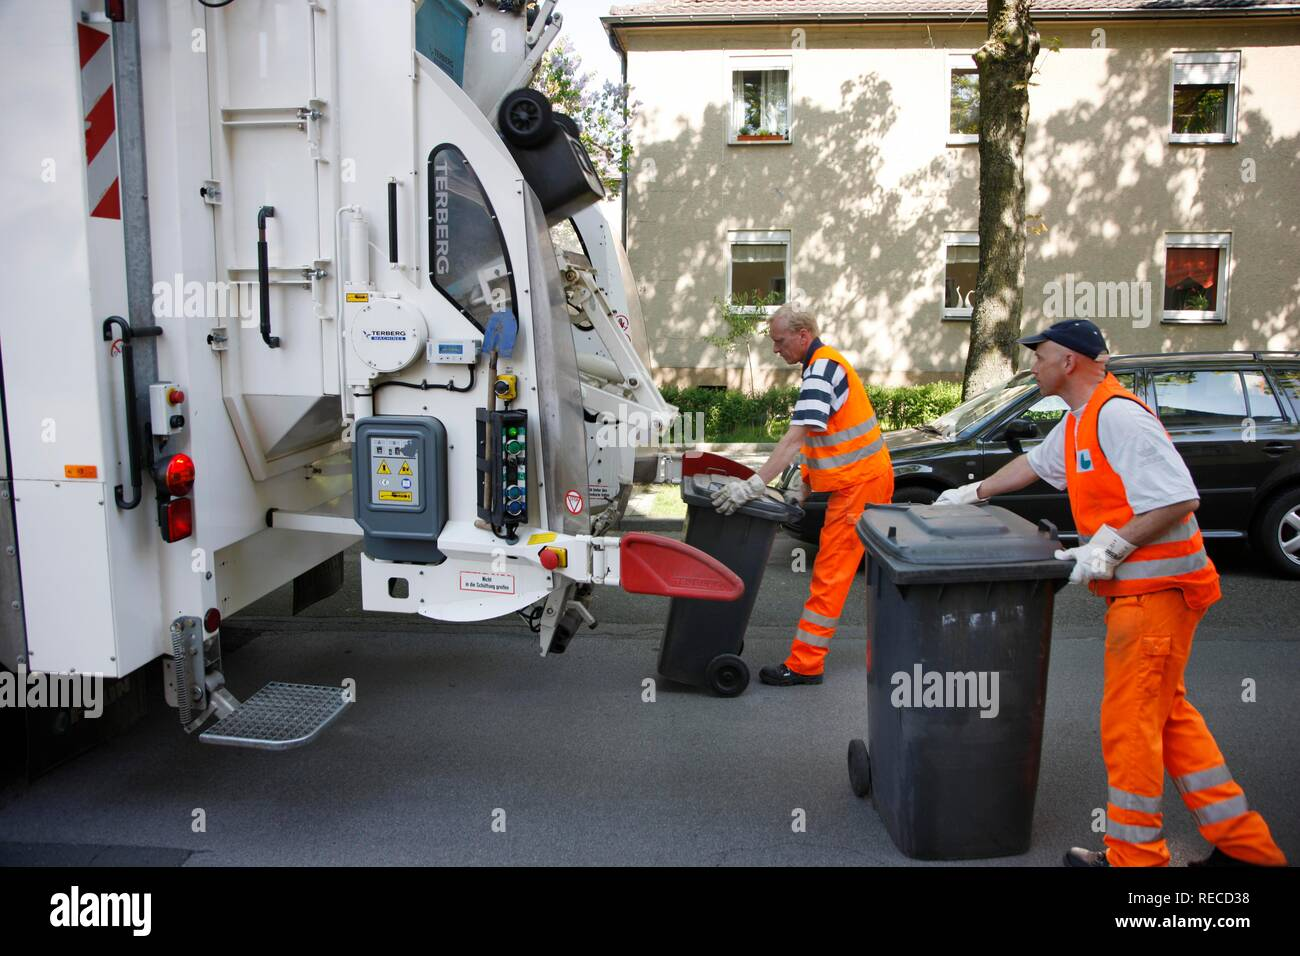 Refuse collection, rubbish bins from private households being emptied, Gelsendienste, Gelsenkirchens public utility company - Stock Image